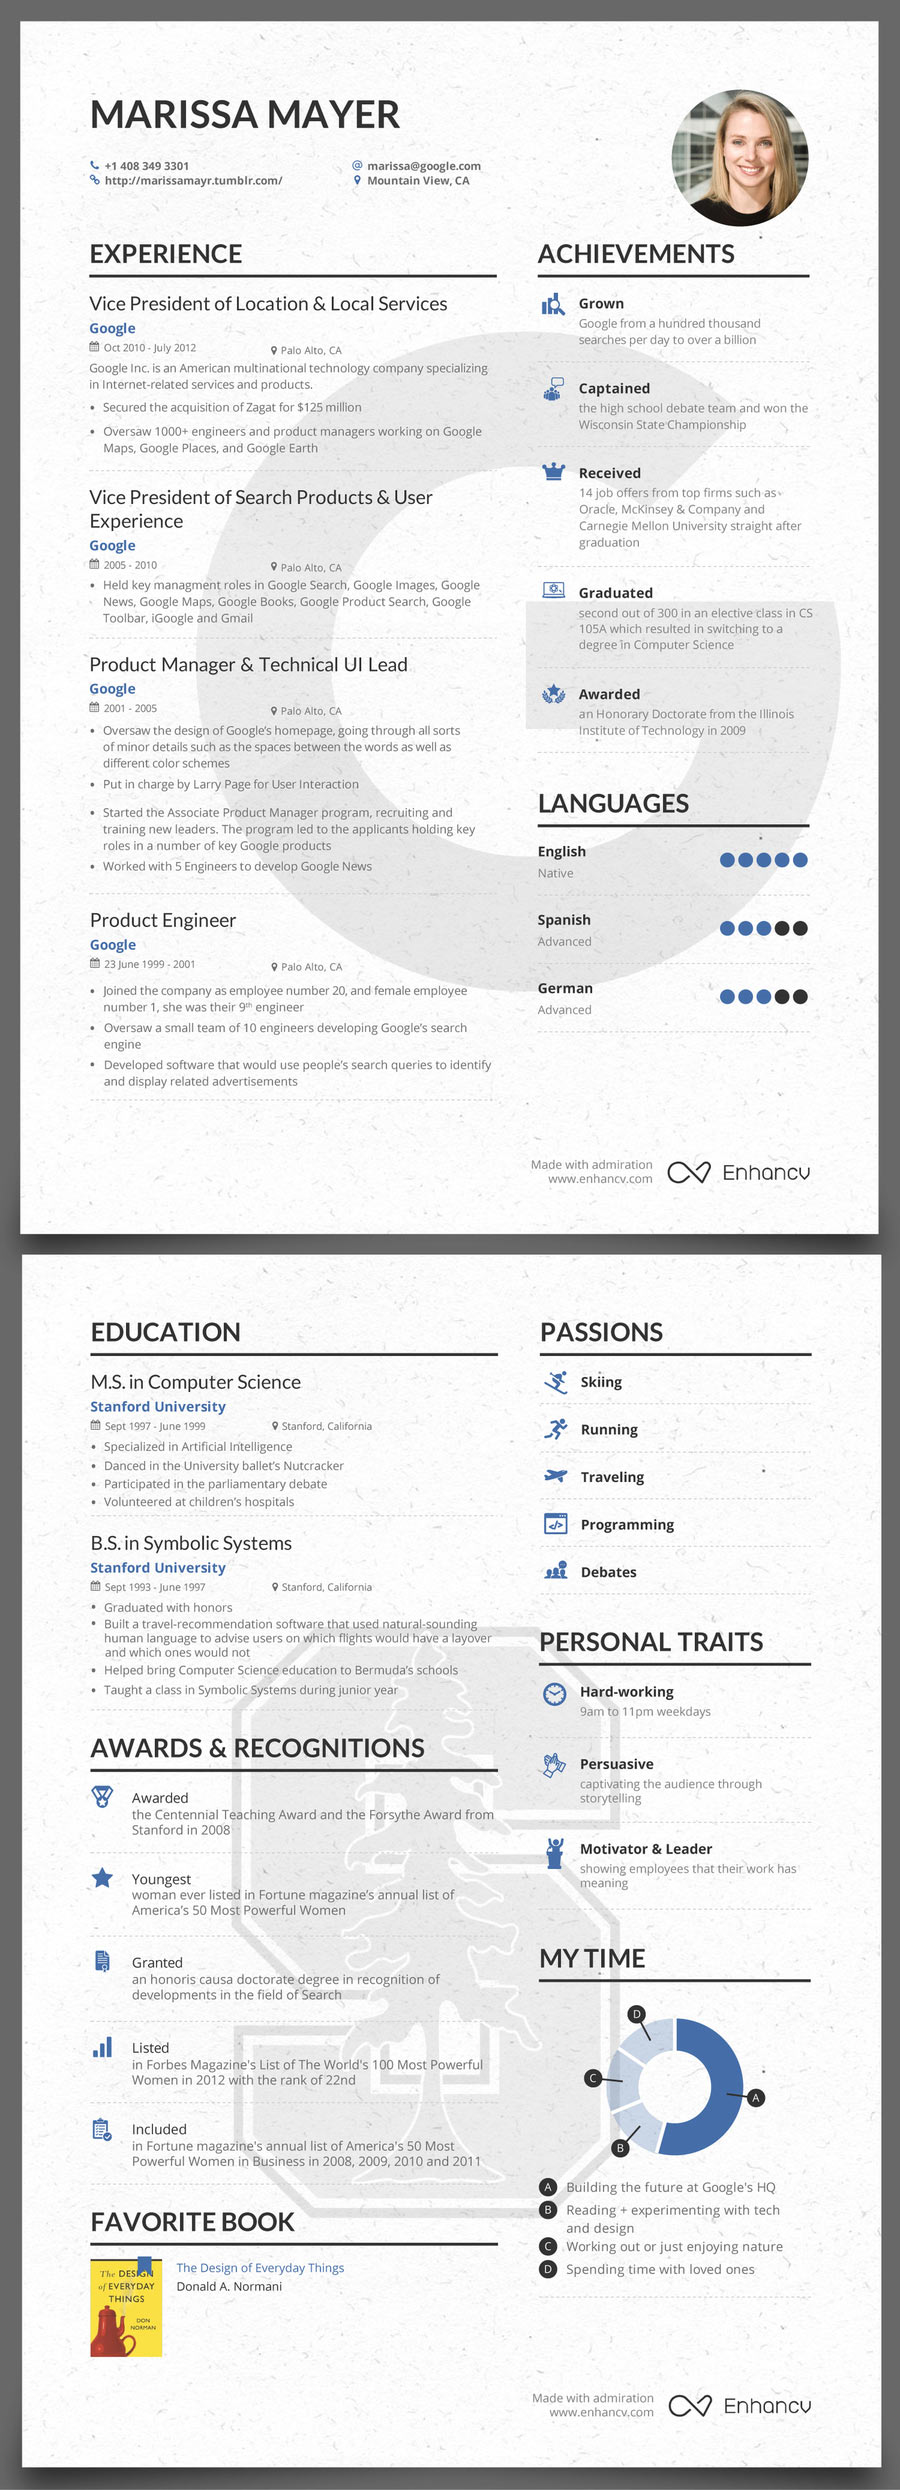 the success journey marissa mayer pre yahoo resume one blog free templates release Resume Marissa Mayer One Page Resume